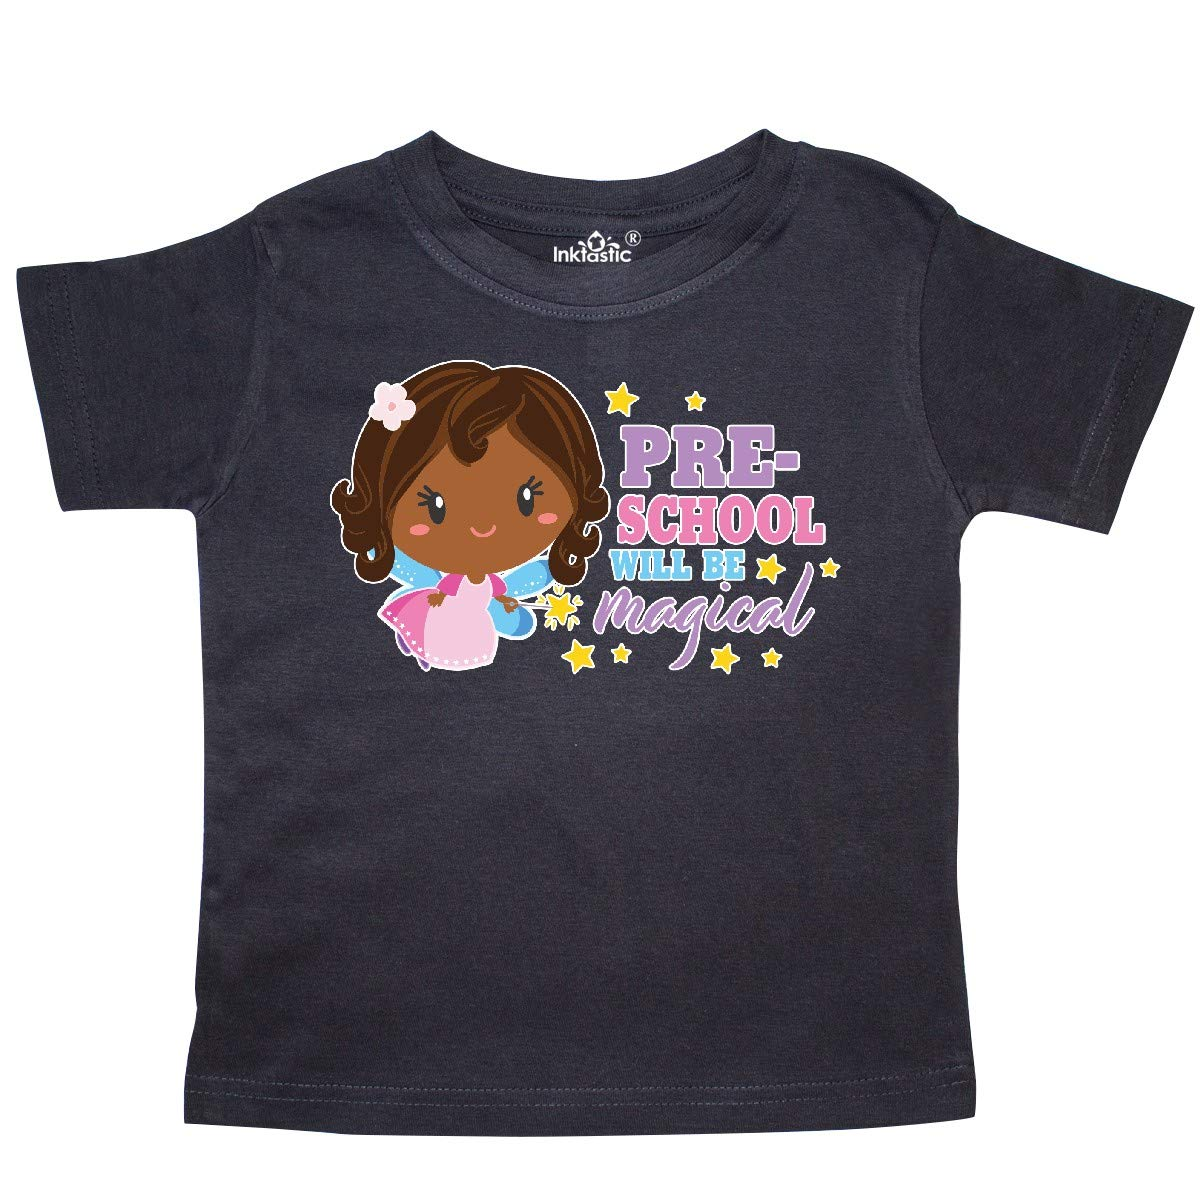 inktastic Preschool Will Be Magical with Brown Haired Fairy Toddler T-Shirt